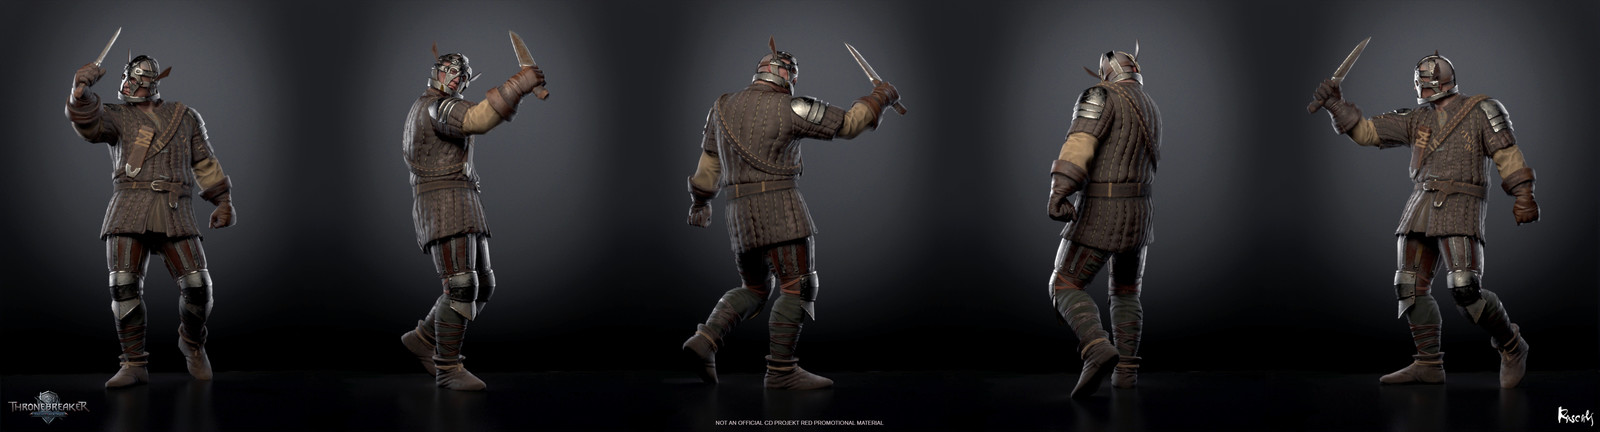 Artist: Pavel Gorovoy, Art Director: Roman Mindek, Producer: Tom Roller.  Poses created from rigs and animation by CD PROJEKT RED. Check out more from Rascals at www.rascals.studio